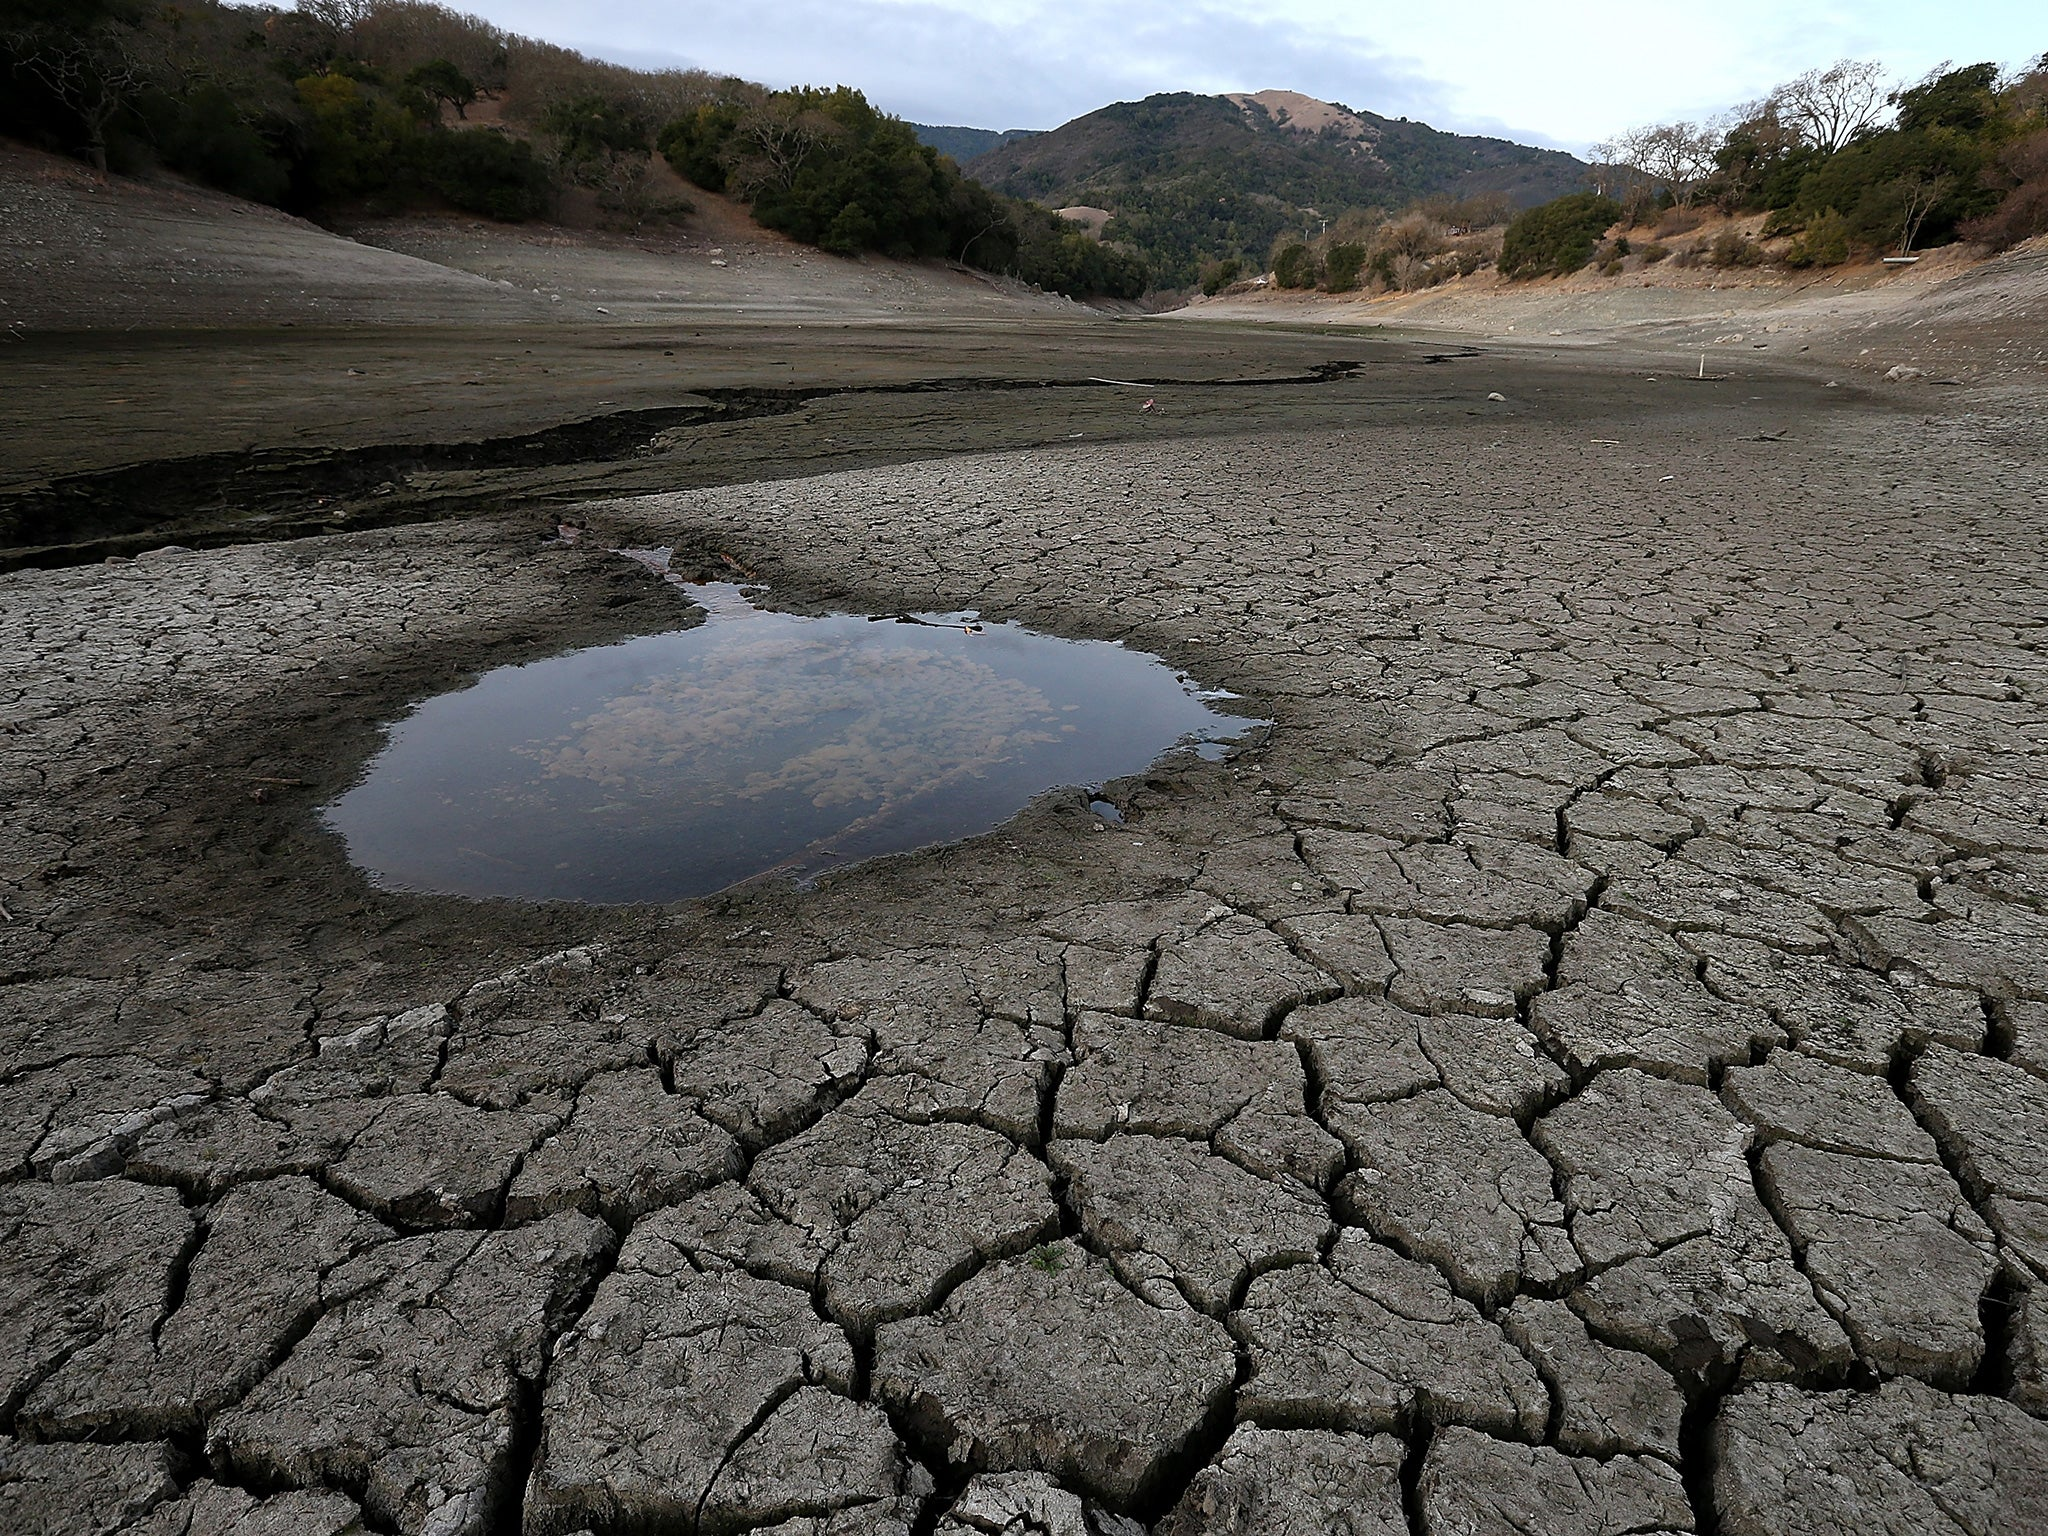 Climate change world faces food shortages and mass migration caused by global warming the independent